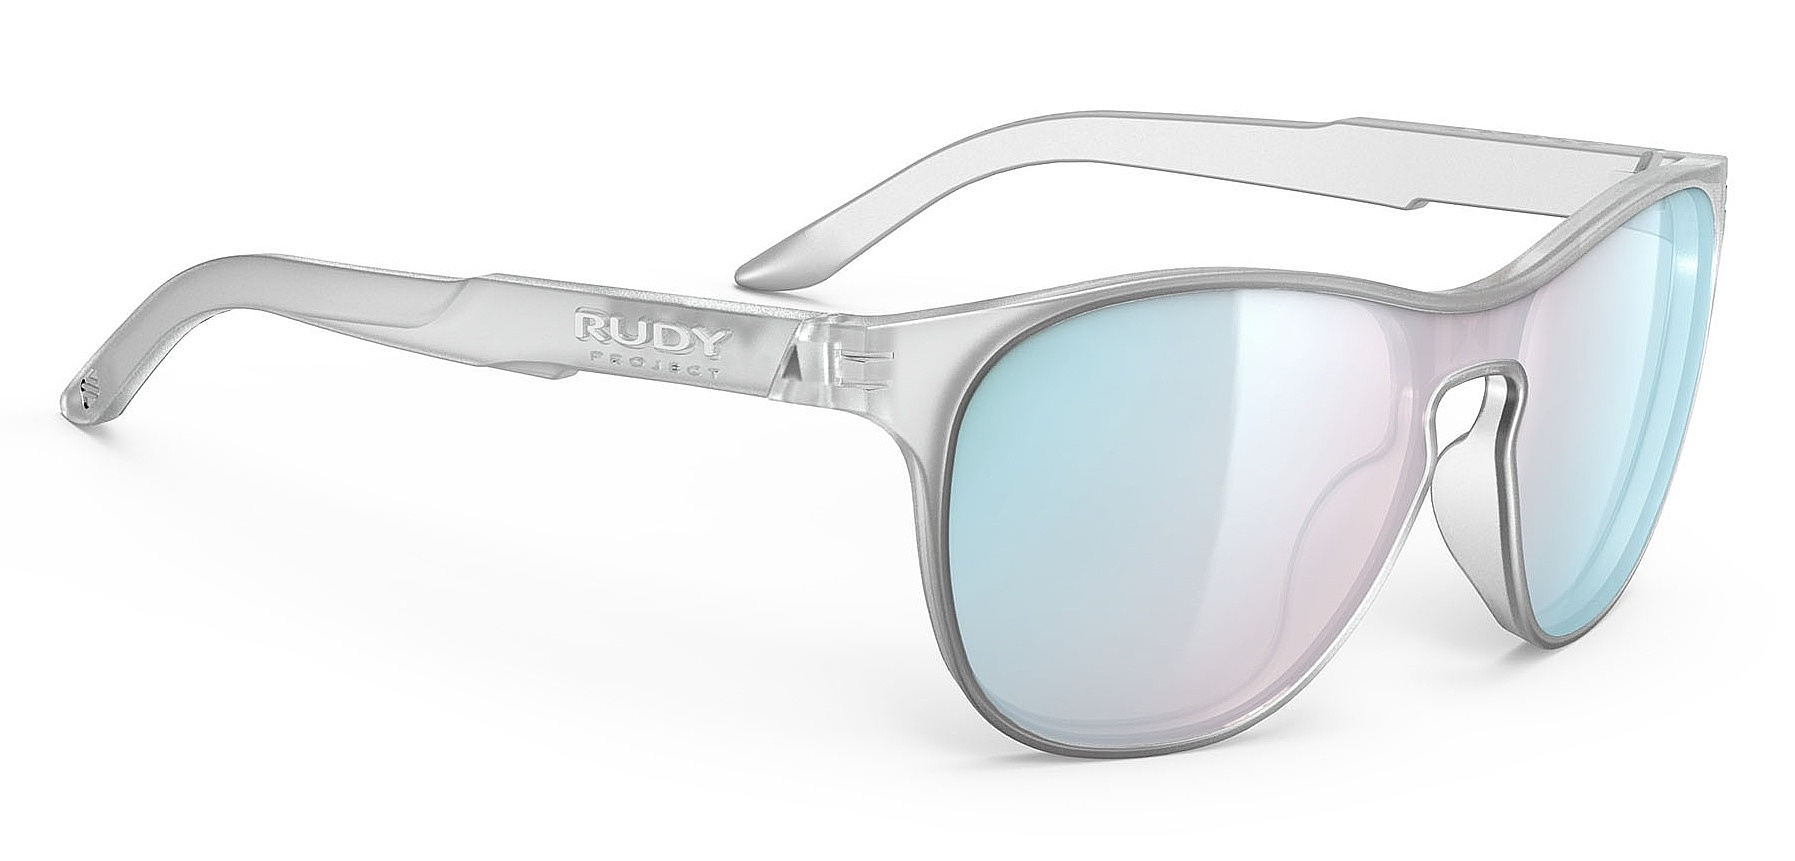 brýle Rudy Project Soundshield - Ice Silver Matte/Multilaser Osmium one size